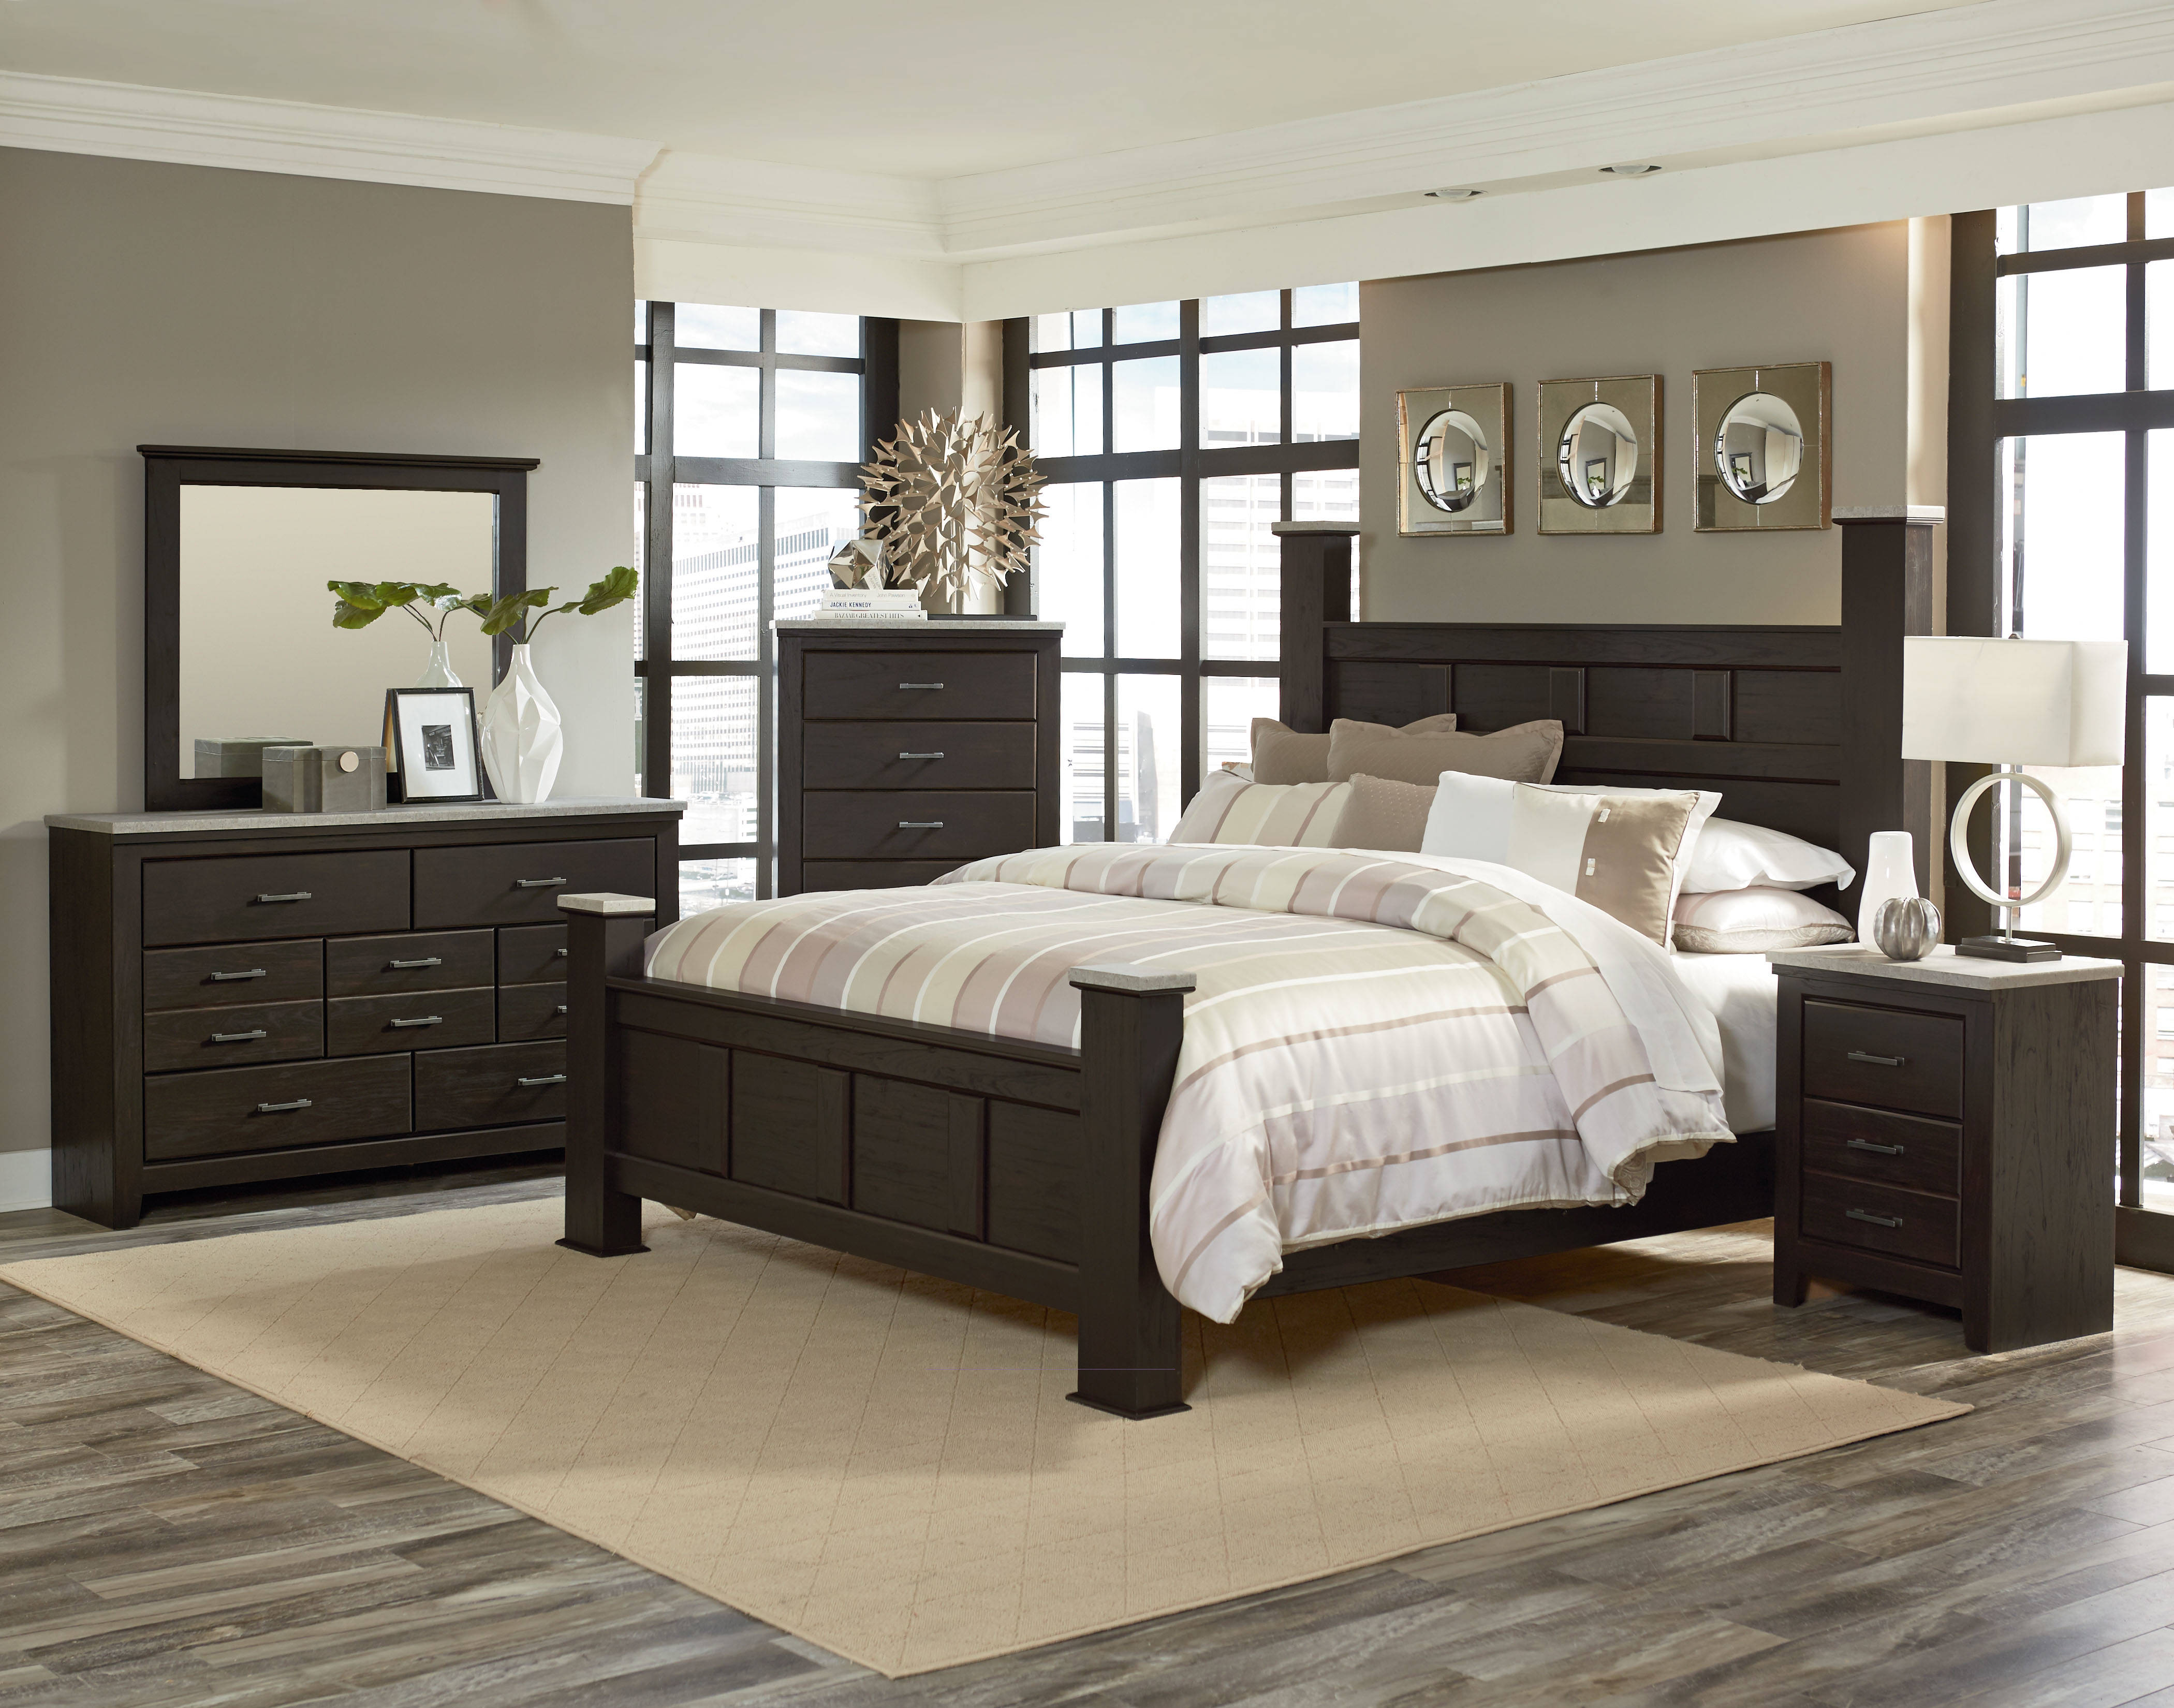 Standard furniture stonehill brown 2pc bedroom set with for Bedroom designs with dark wood furniture